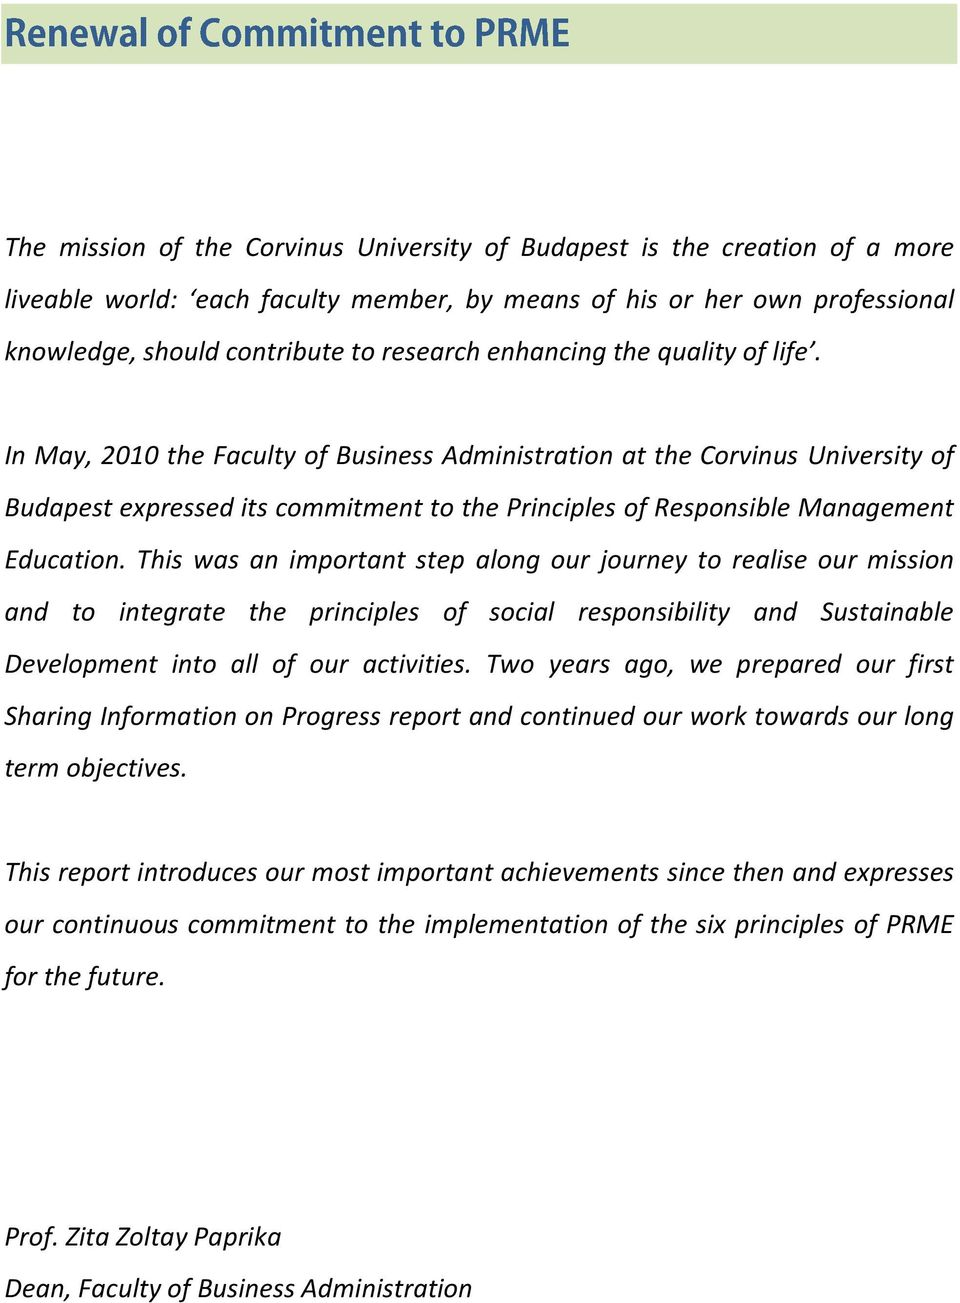 In May, 2010 the Faculty of Business Administration at the Corvinus University of Budapest expressed its commitment to the Principles of Responsible Management Education.